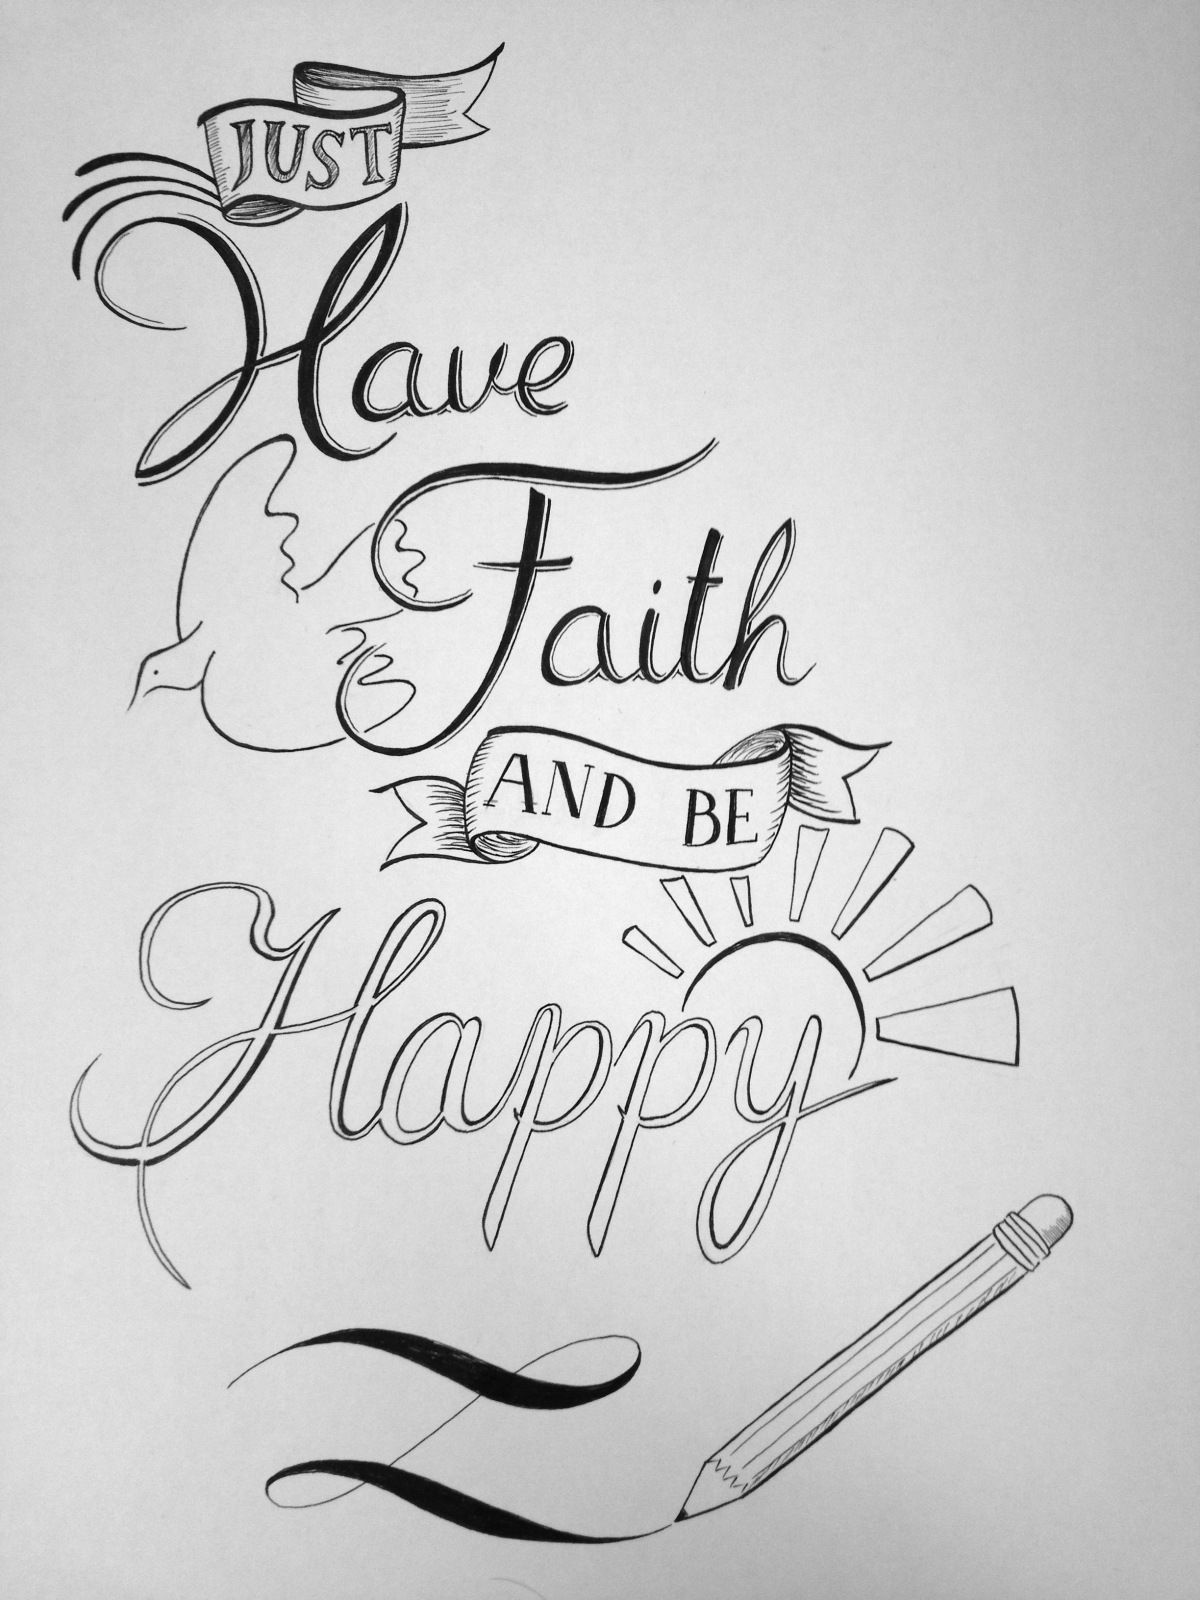 Just Have Faith And Be Happy With Images Drawings For Boyfriend Easy Pictures To Draw Drawing Quotes